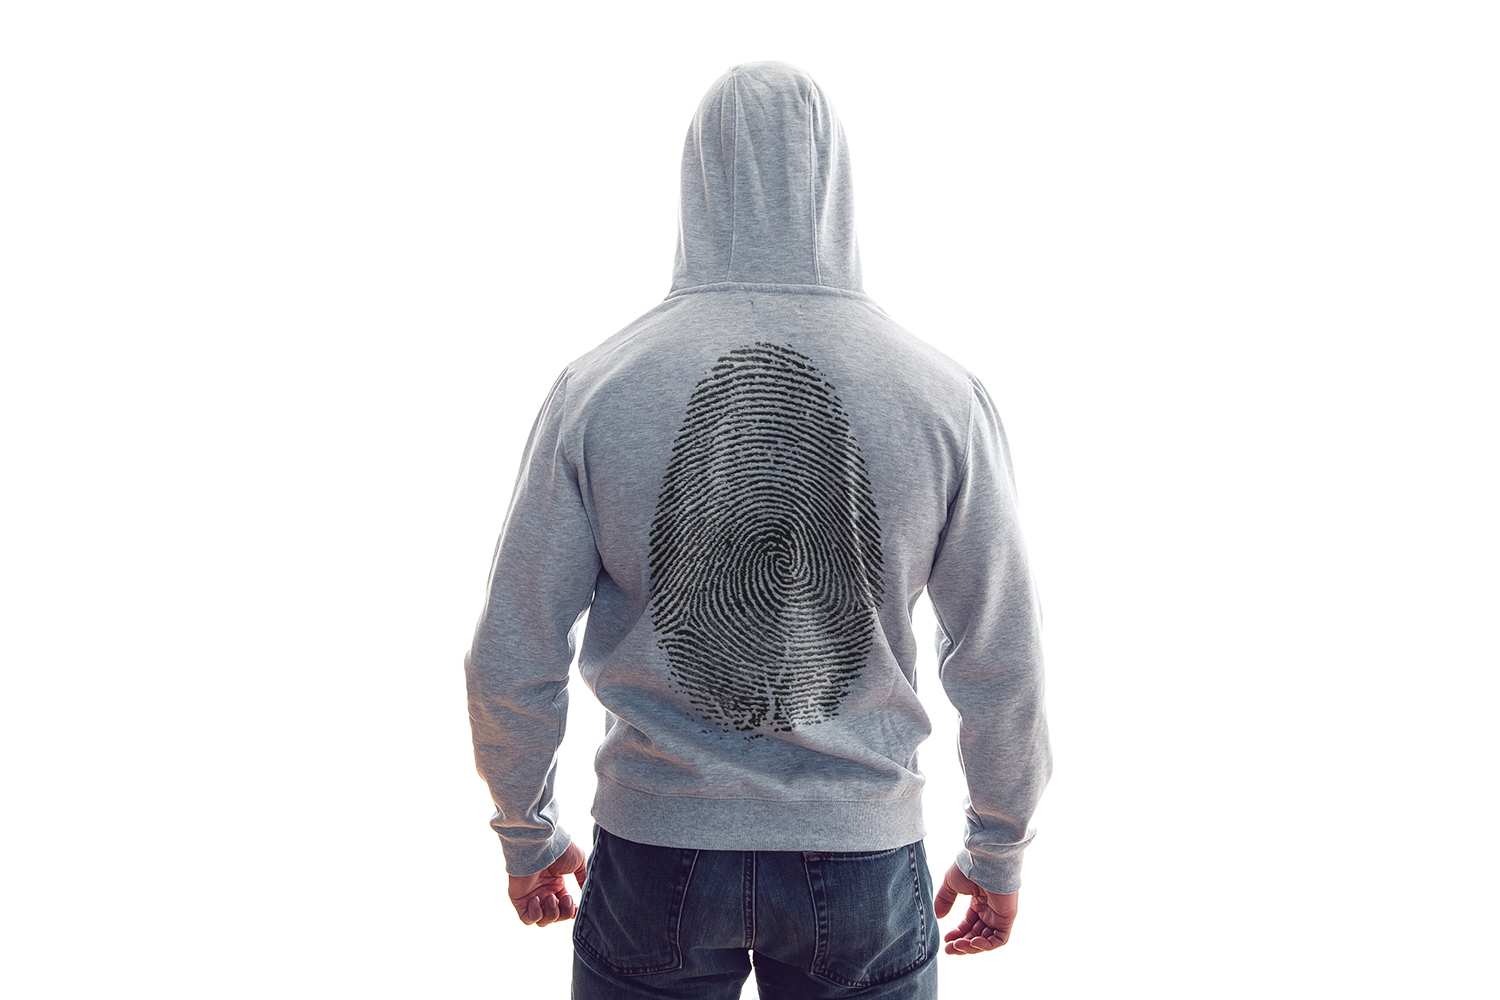 Men's Hoodie Mock-Up example image 3